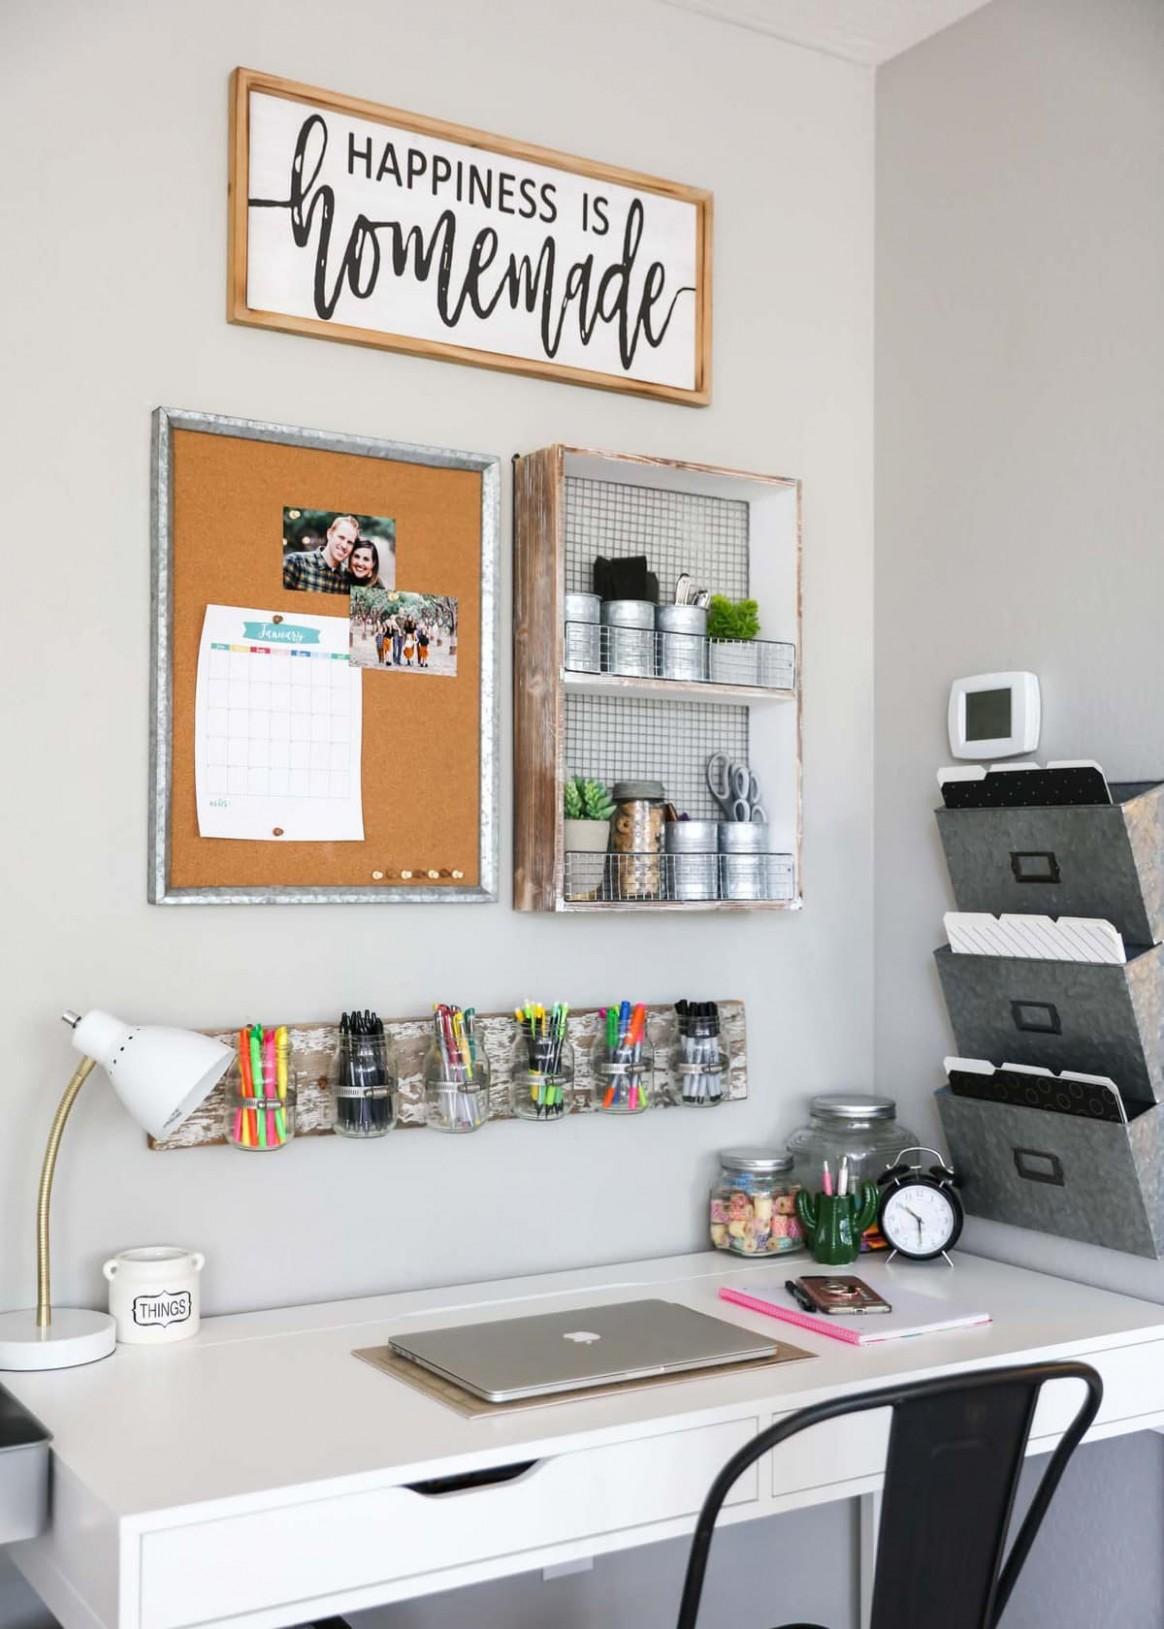 8 Office Organization Ideas - Dova Home - Home Office Ideas Organization